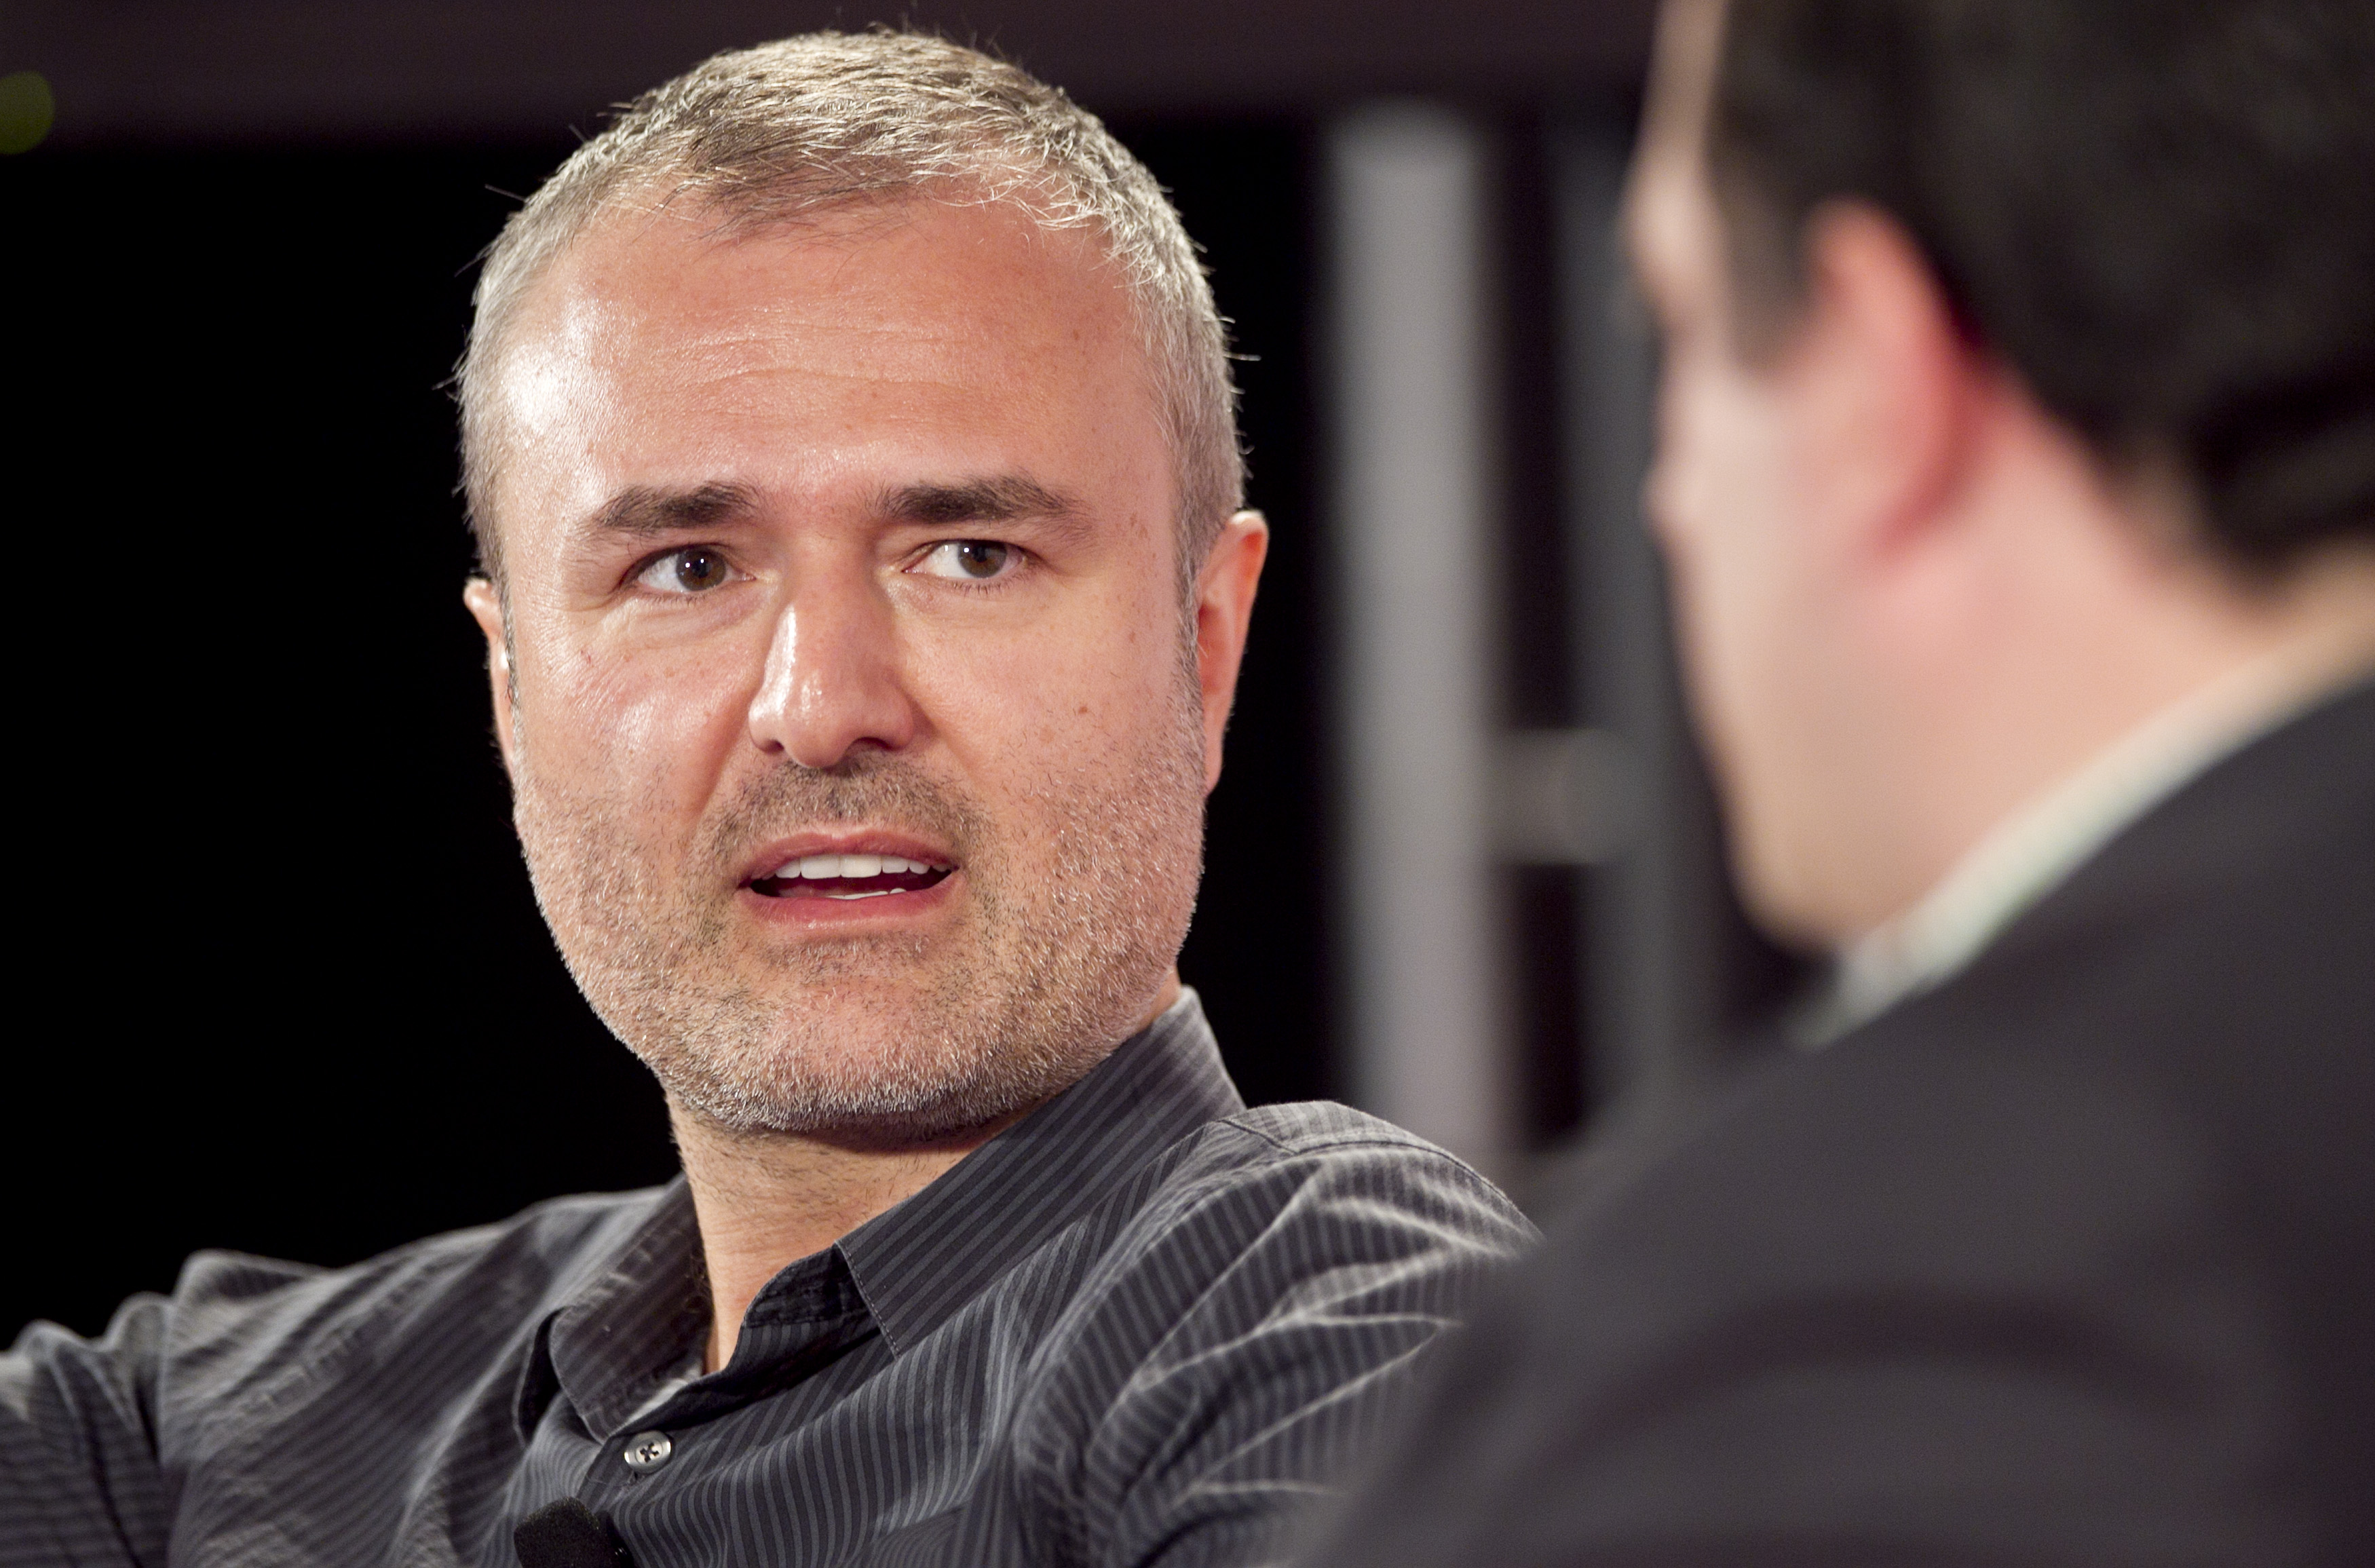 Gawker Media founder Nick Denton in 2010